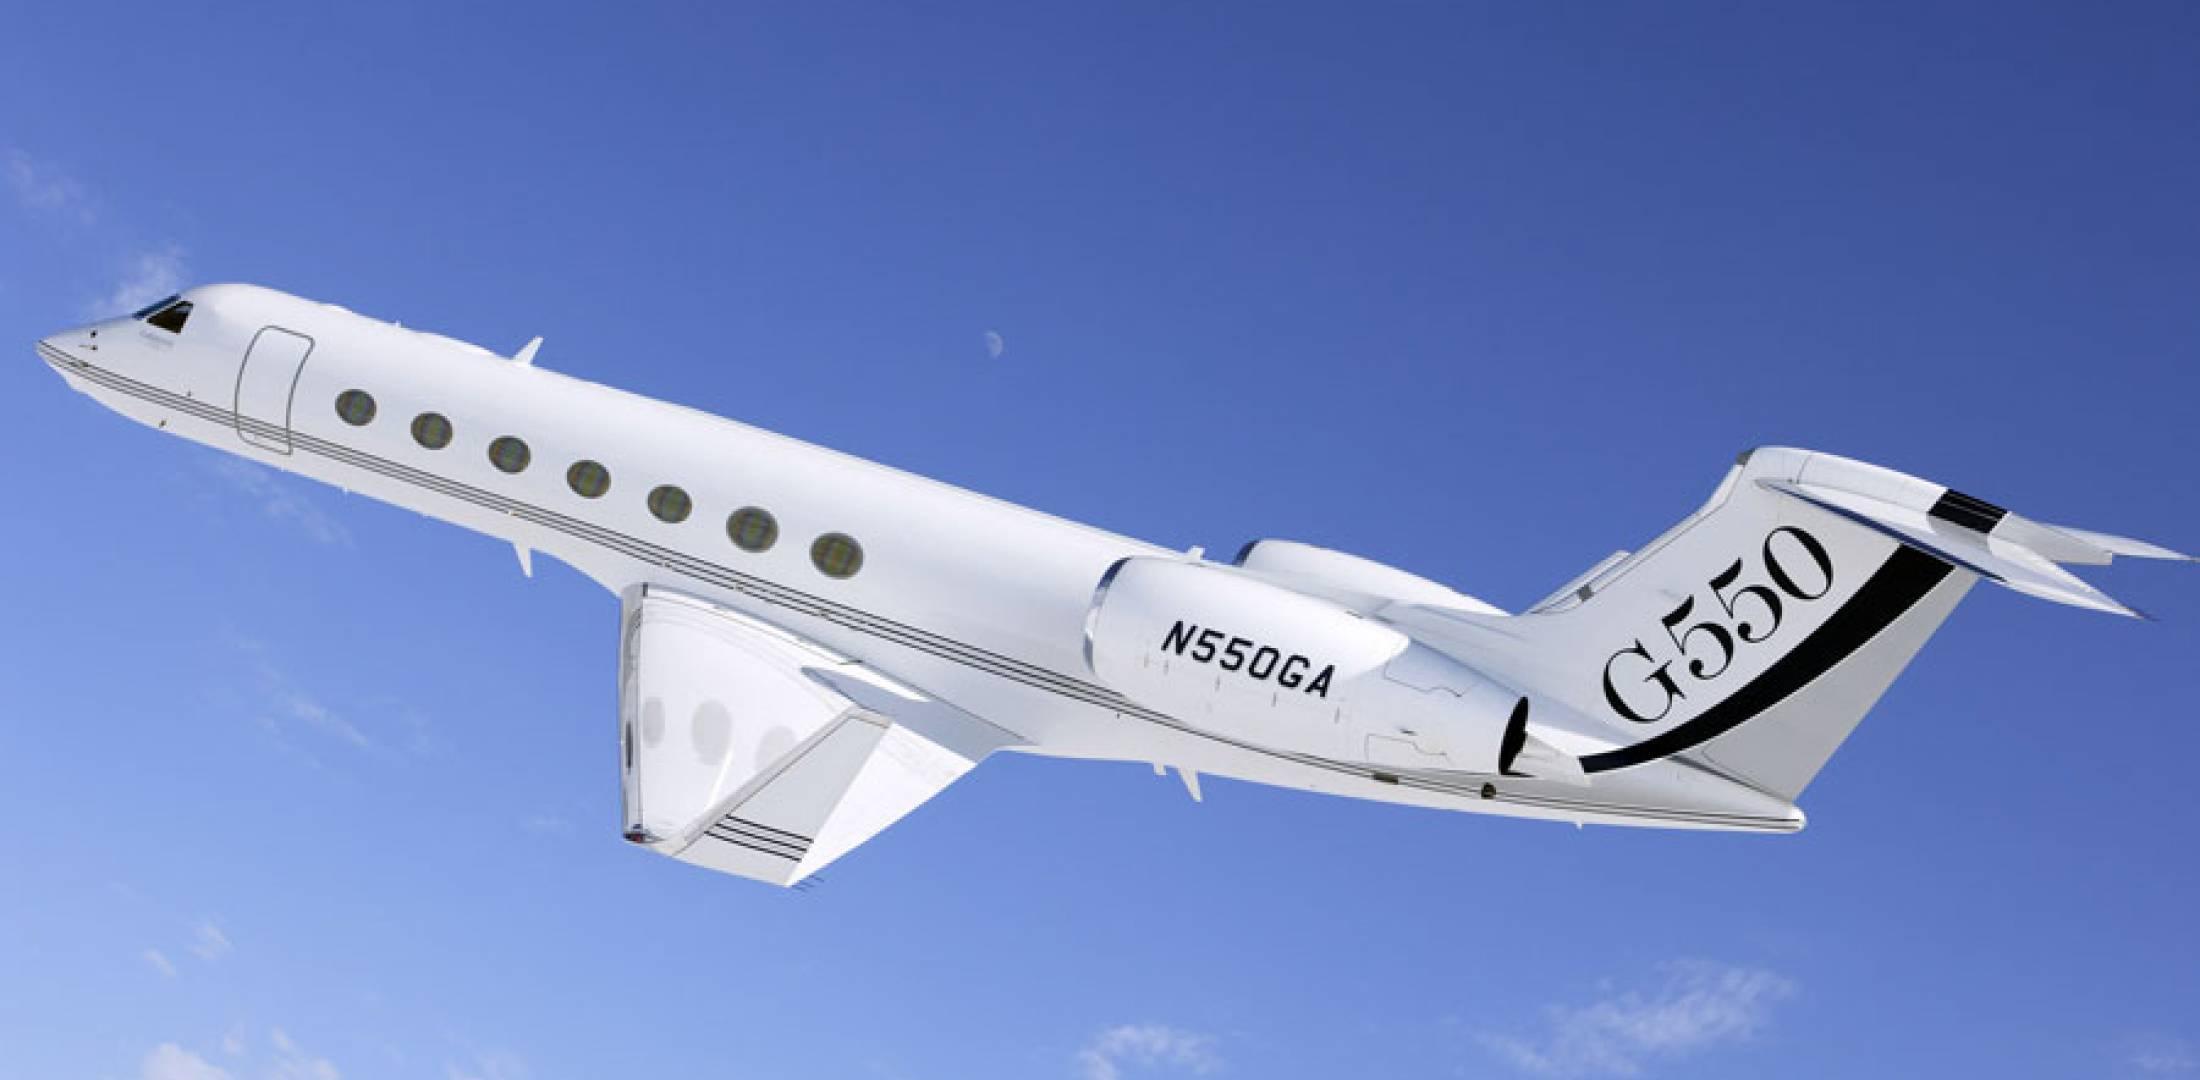 Gulfstream Aerospace had a banner year in 2013. According to full-year results from parent company General Dynamics, the aerospace division, which includes Gulfstream and Jet Aviation, saw revenues climb 17.4 percent year-over-year to $8.118 billion, while profits soared 65 percent to $1.416 billion.  Gulfstream delivered 144 completed jets (121 large-cabin and 23 midsize jets) last year versus 94 (83 large-cabin and 11 midsize) in 2012. Meanwhile, backlog was boosted in the fourth quarter mainly by rising